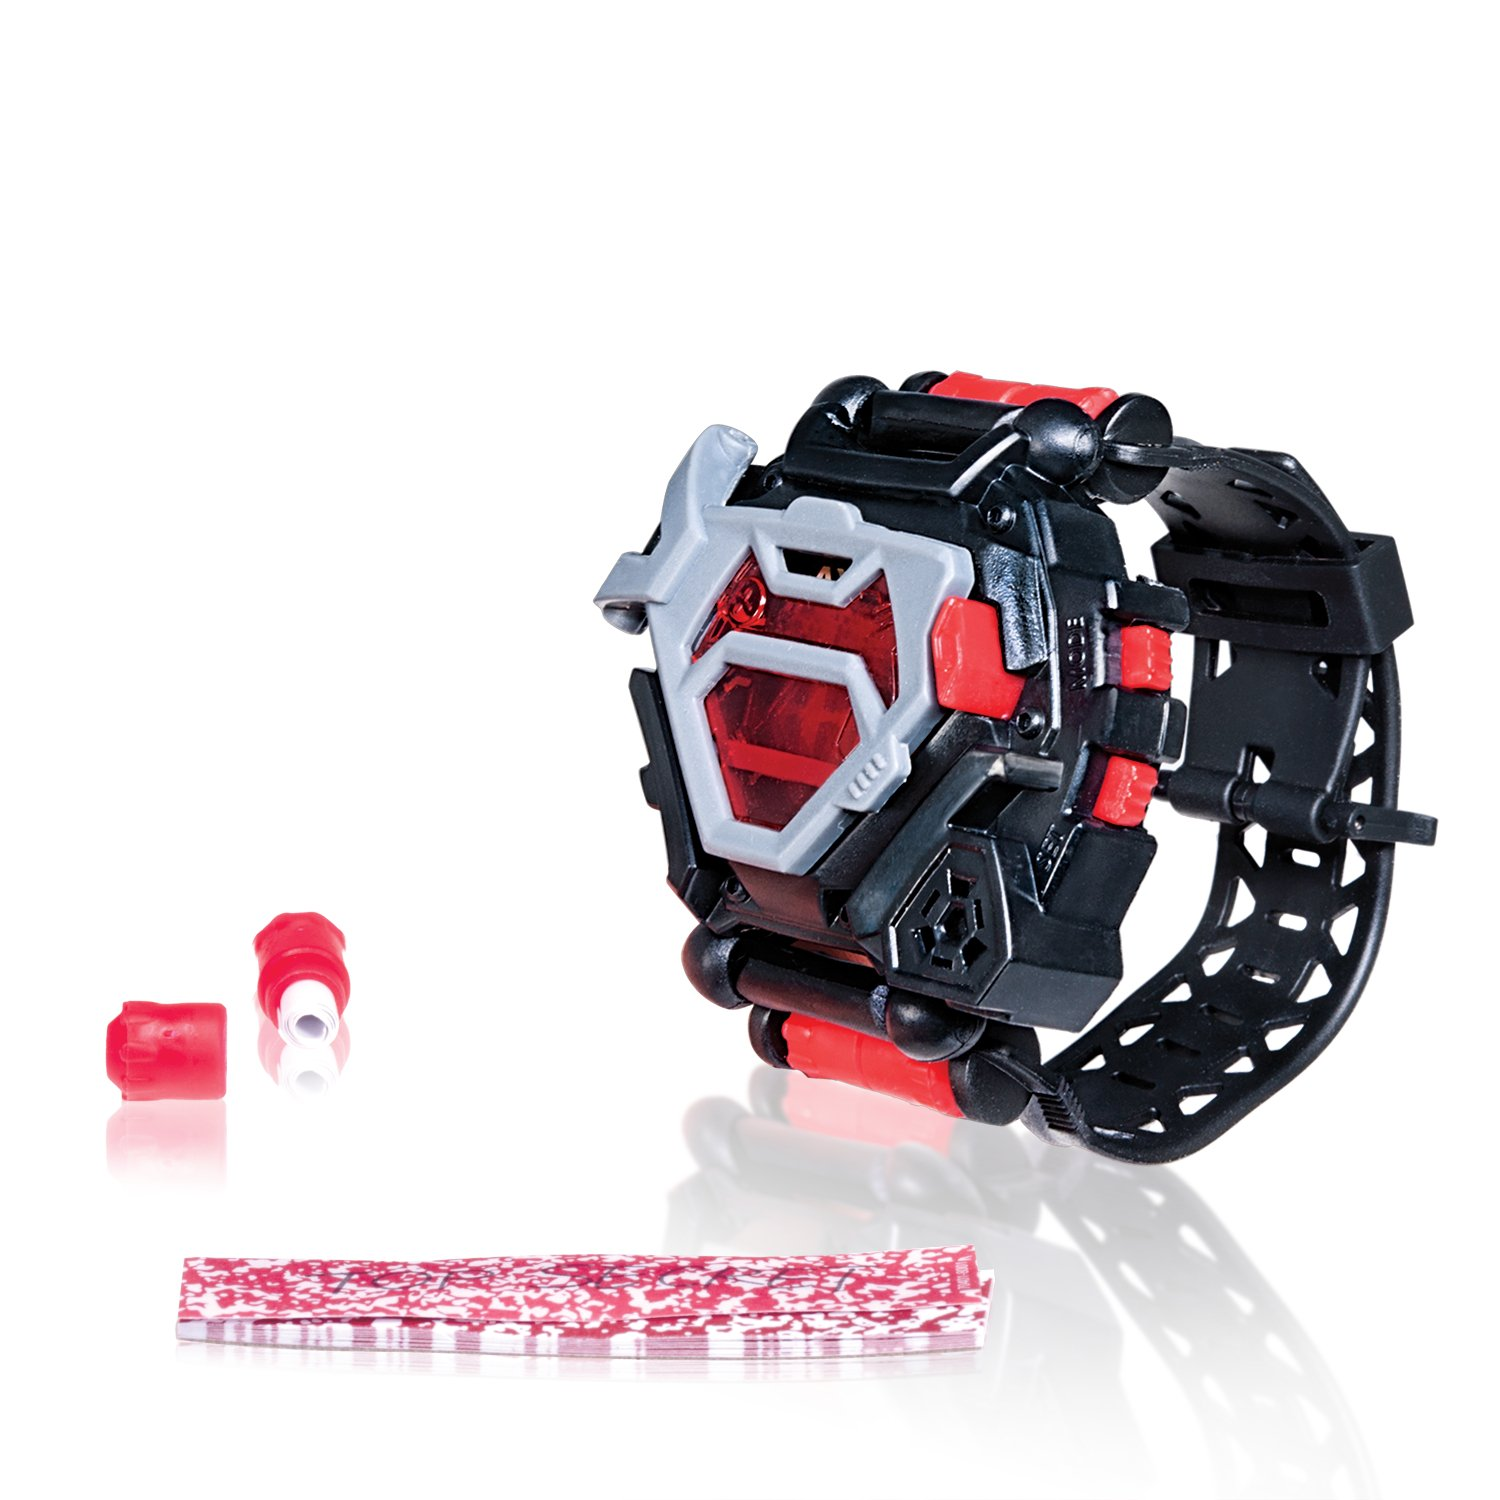 image of a spy watch toy for boys in black and red color